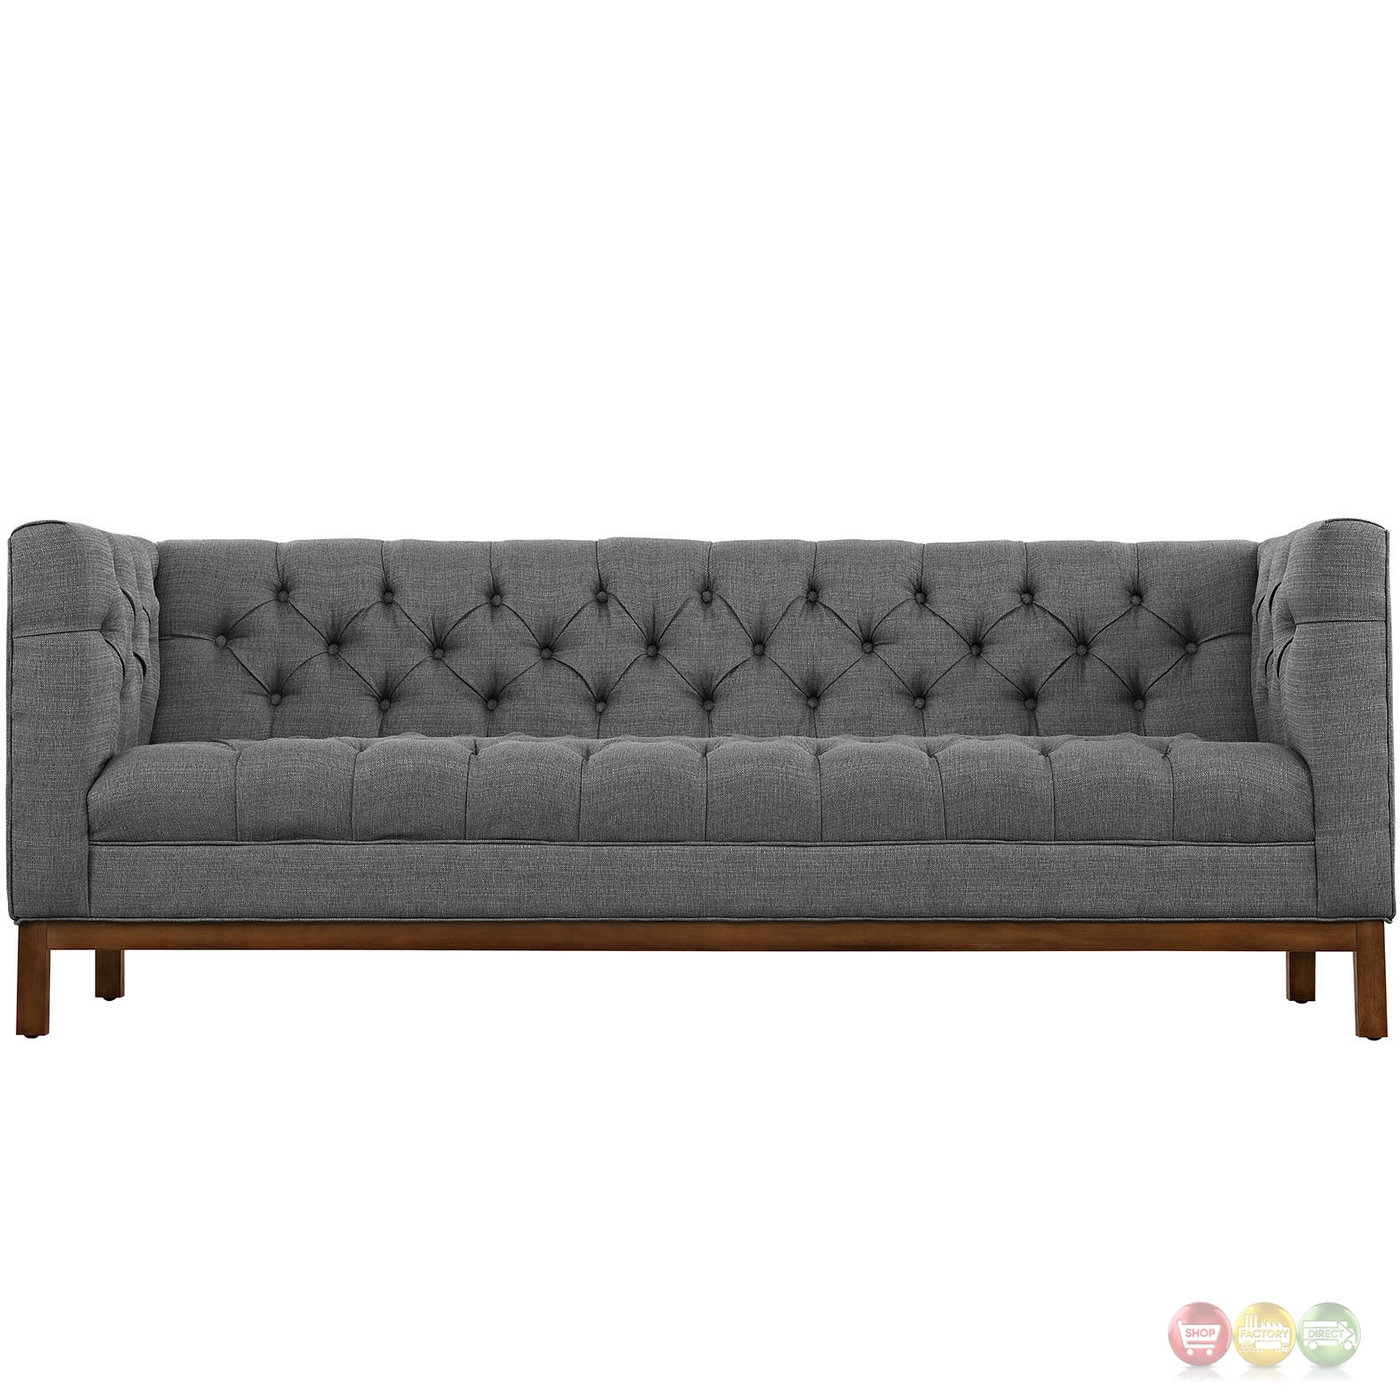 modern square sofa wooden designs for small living room mid century panache vintage button tufted